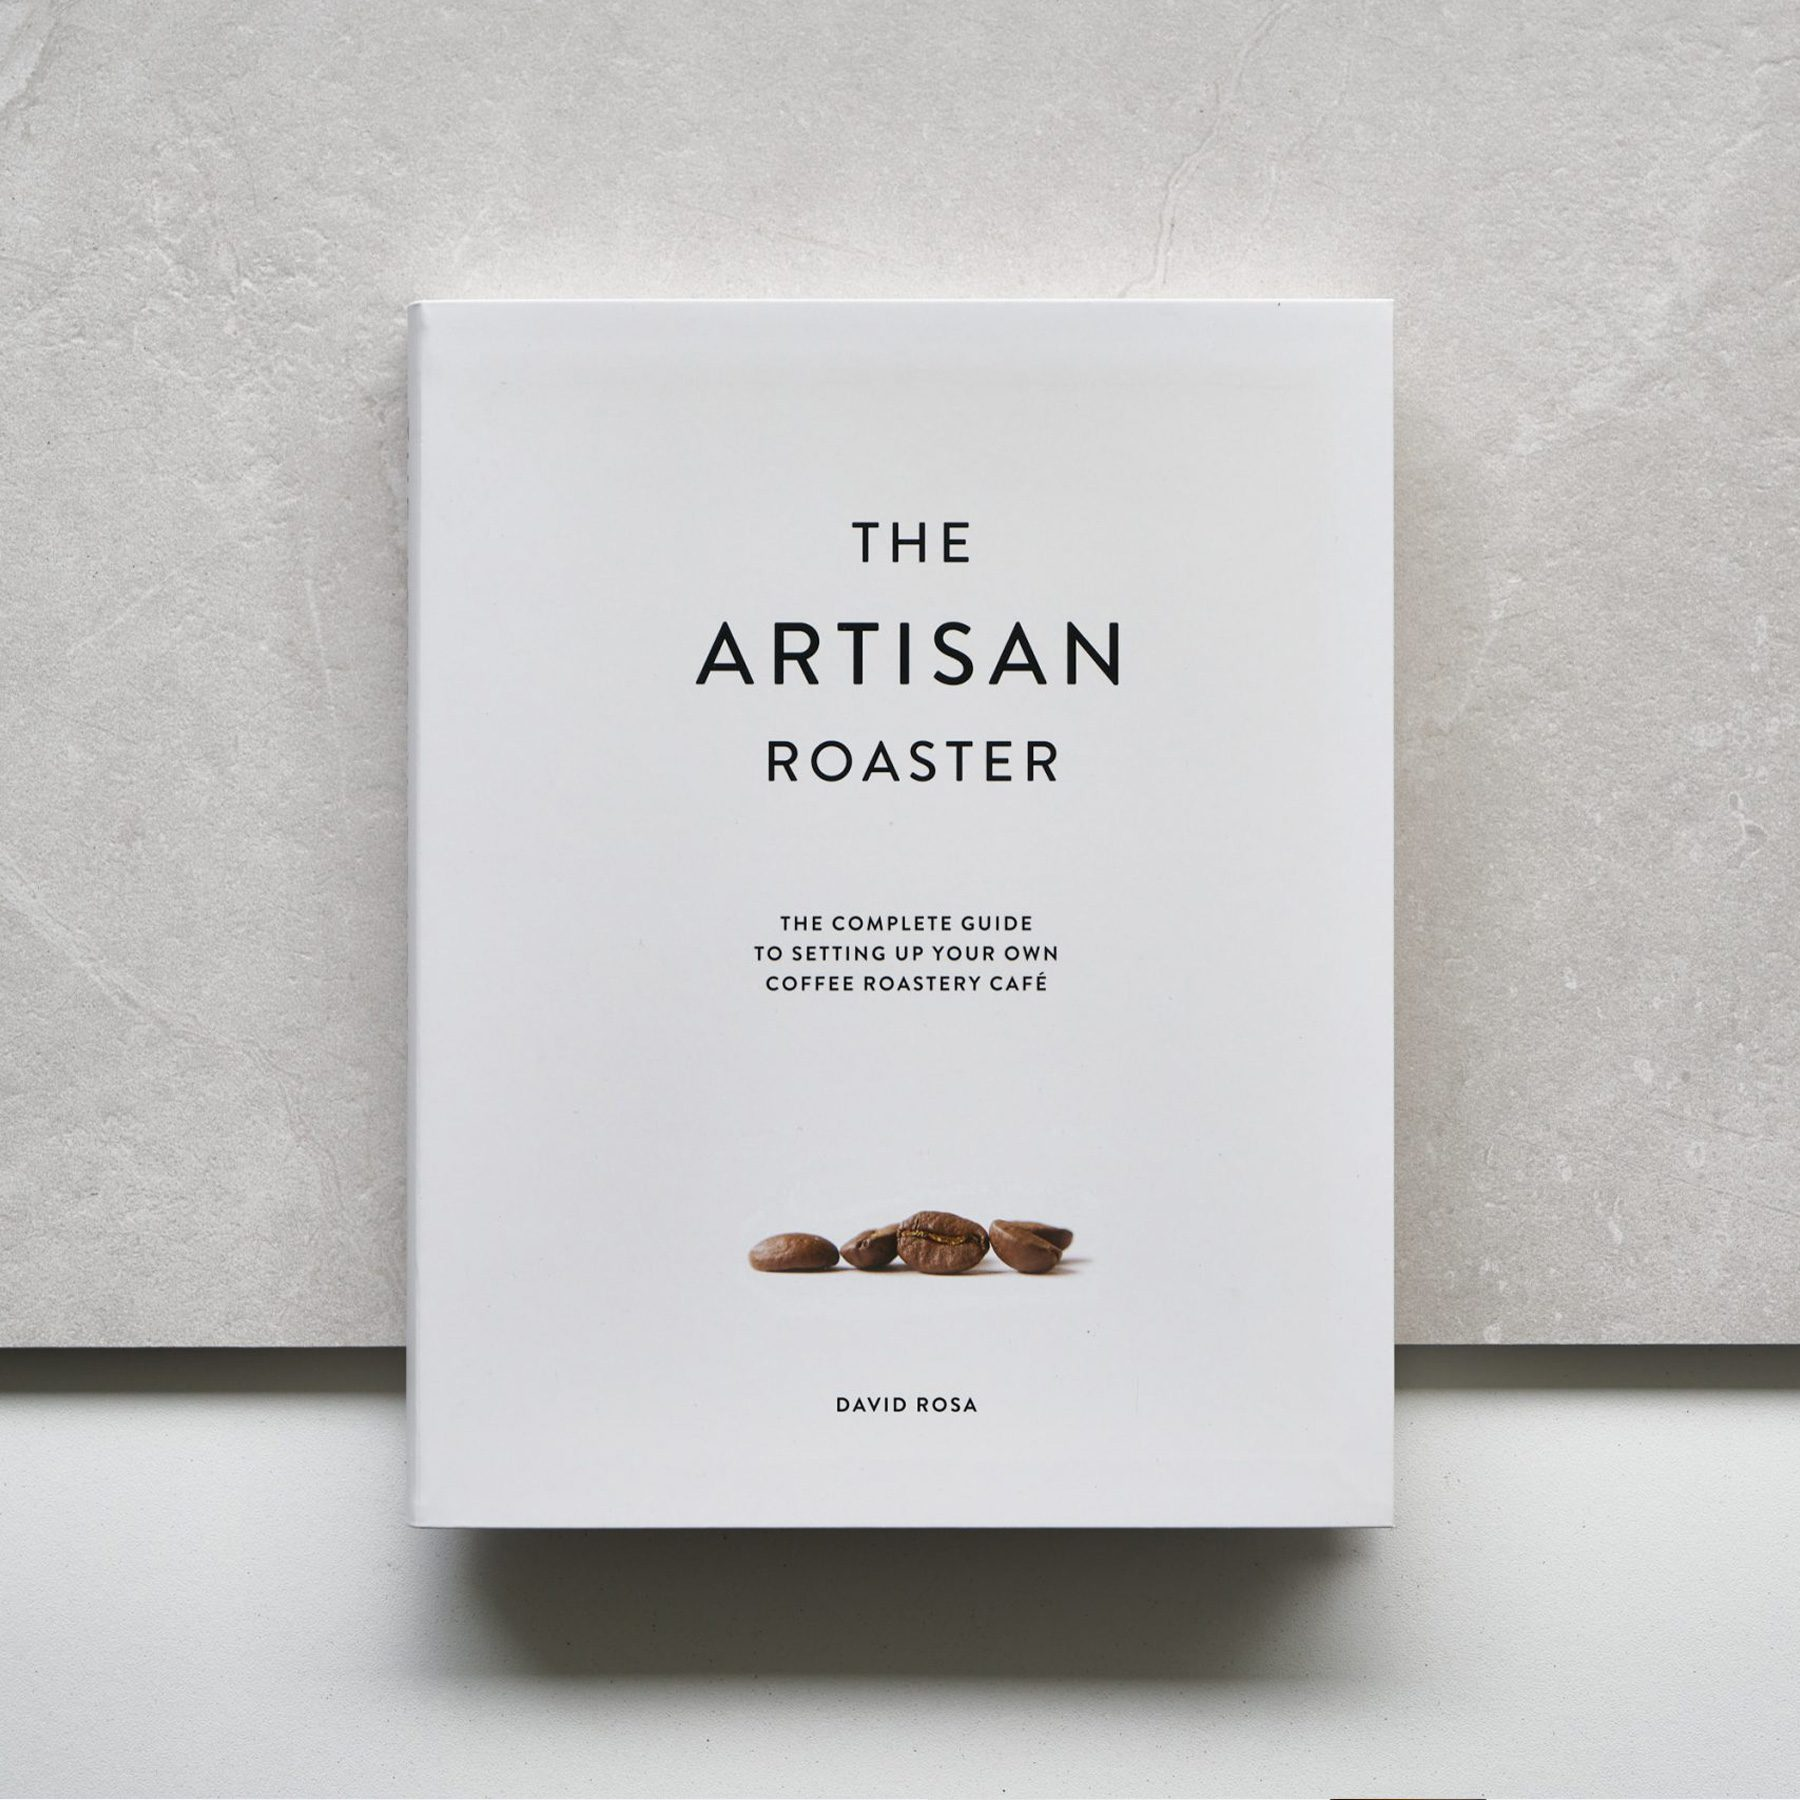 The-Artisan-Roaster-Setting-up-your-own-Coffee-Roastery-Cafe-Softer-Volumes-1